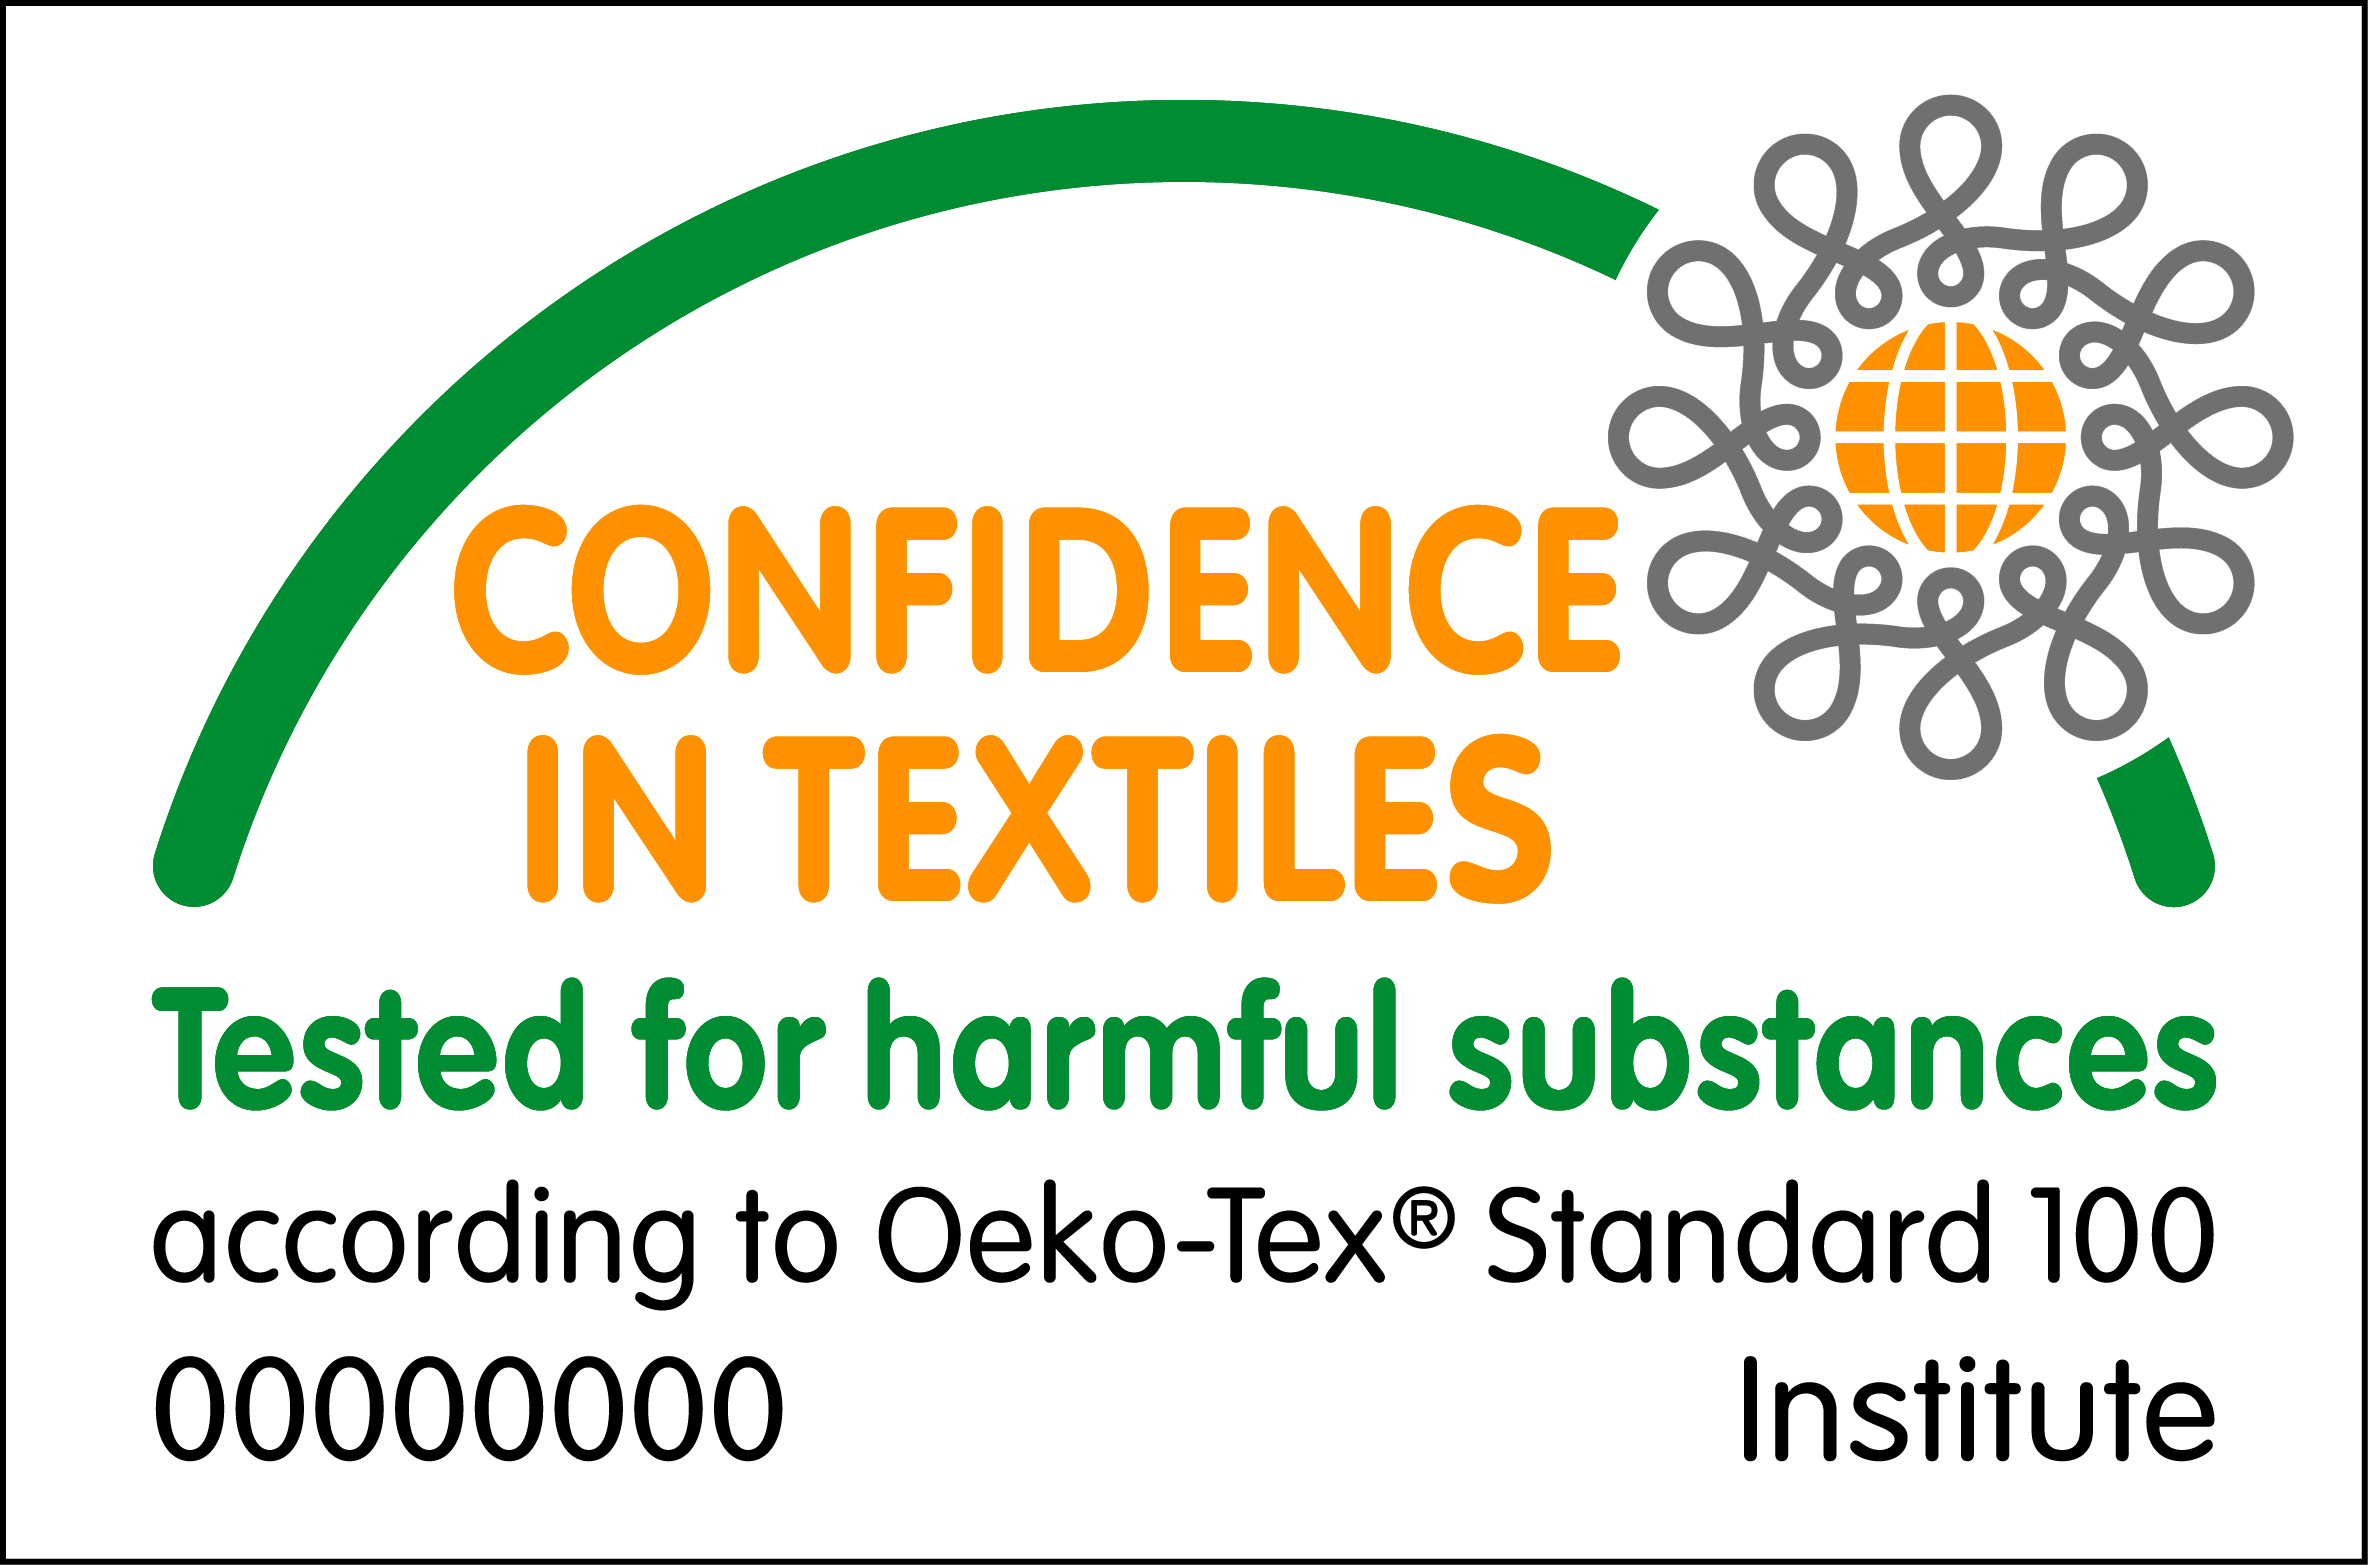 OEKO-TEX 100 approved